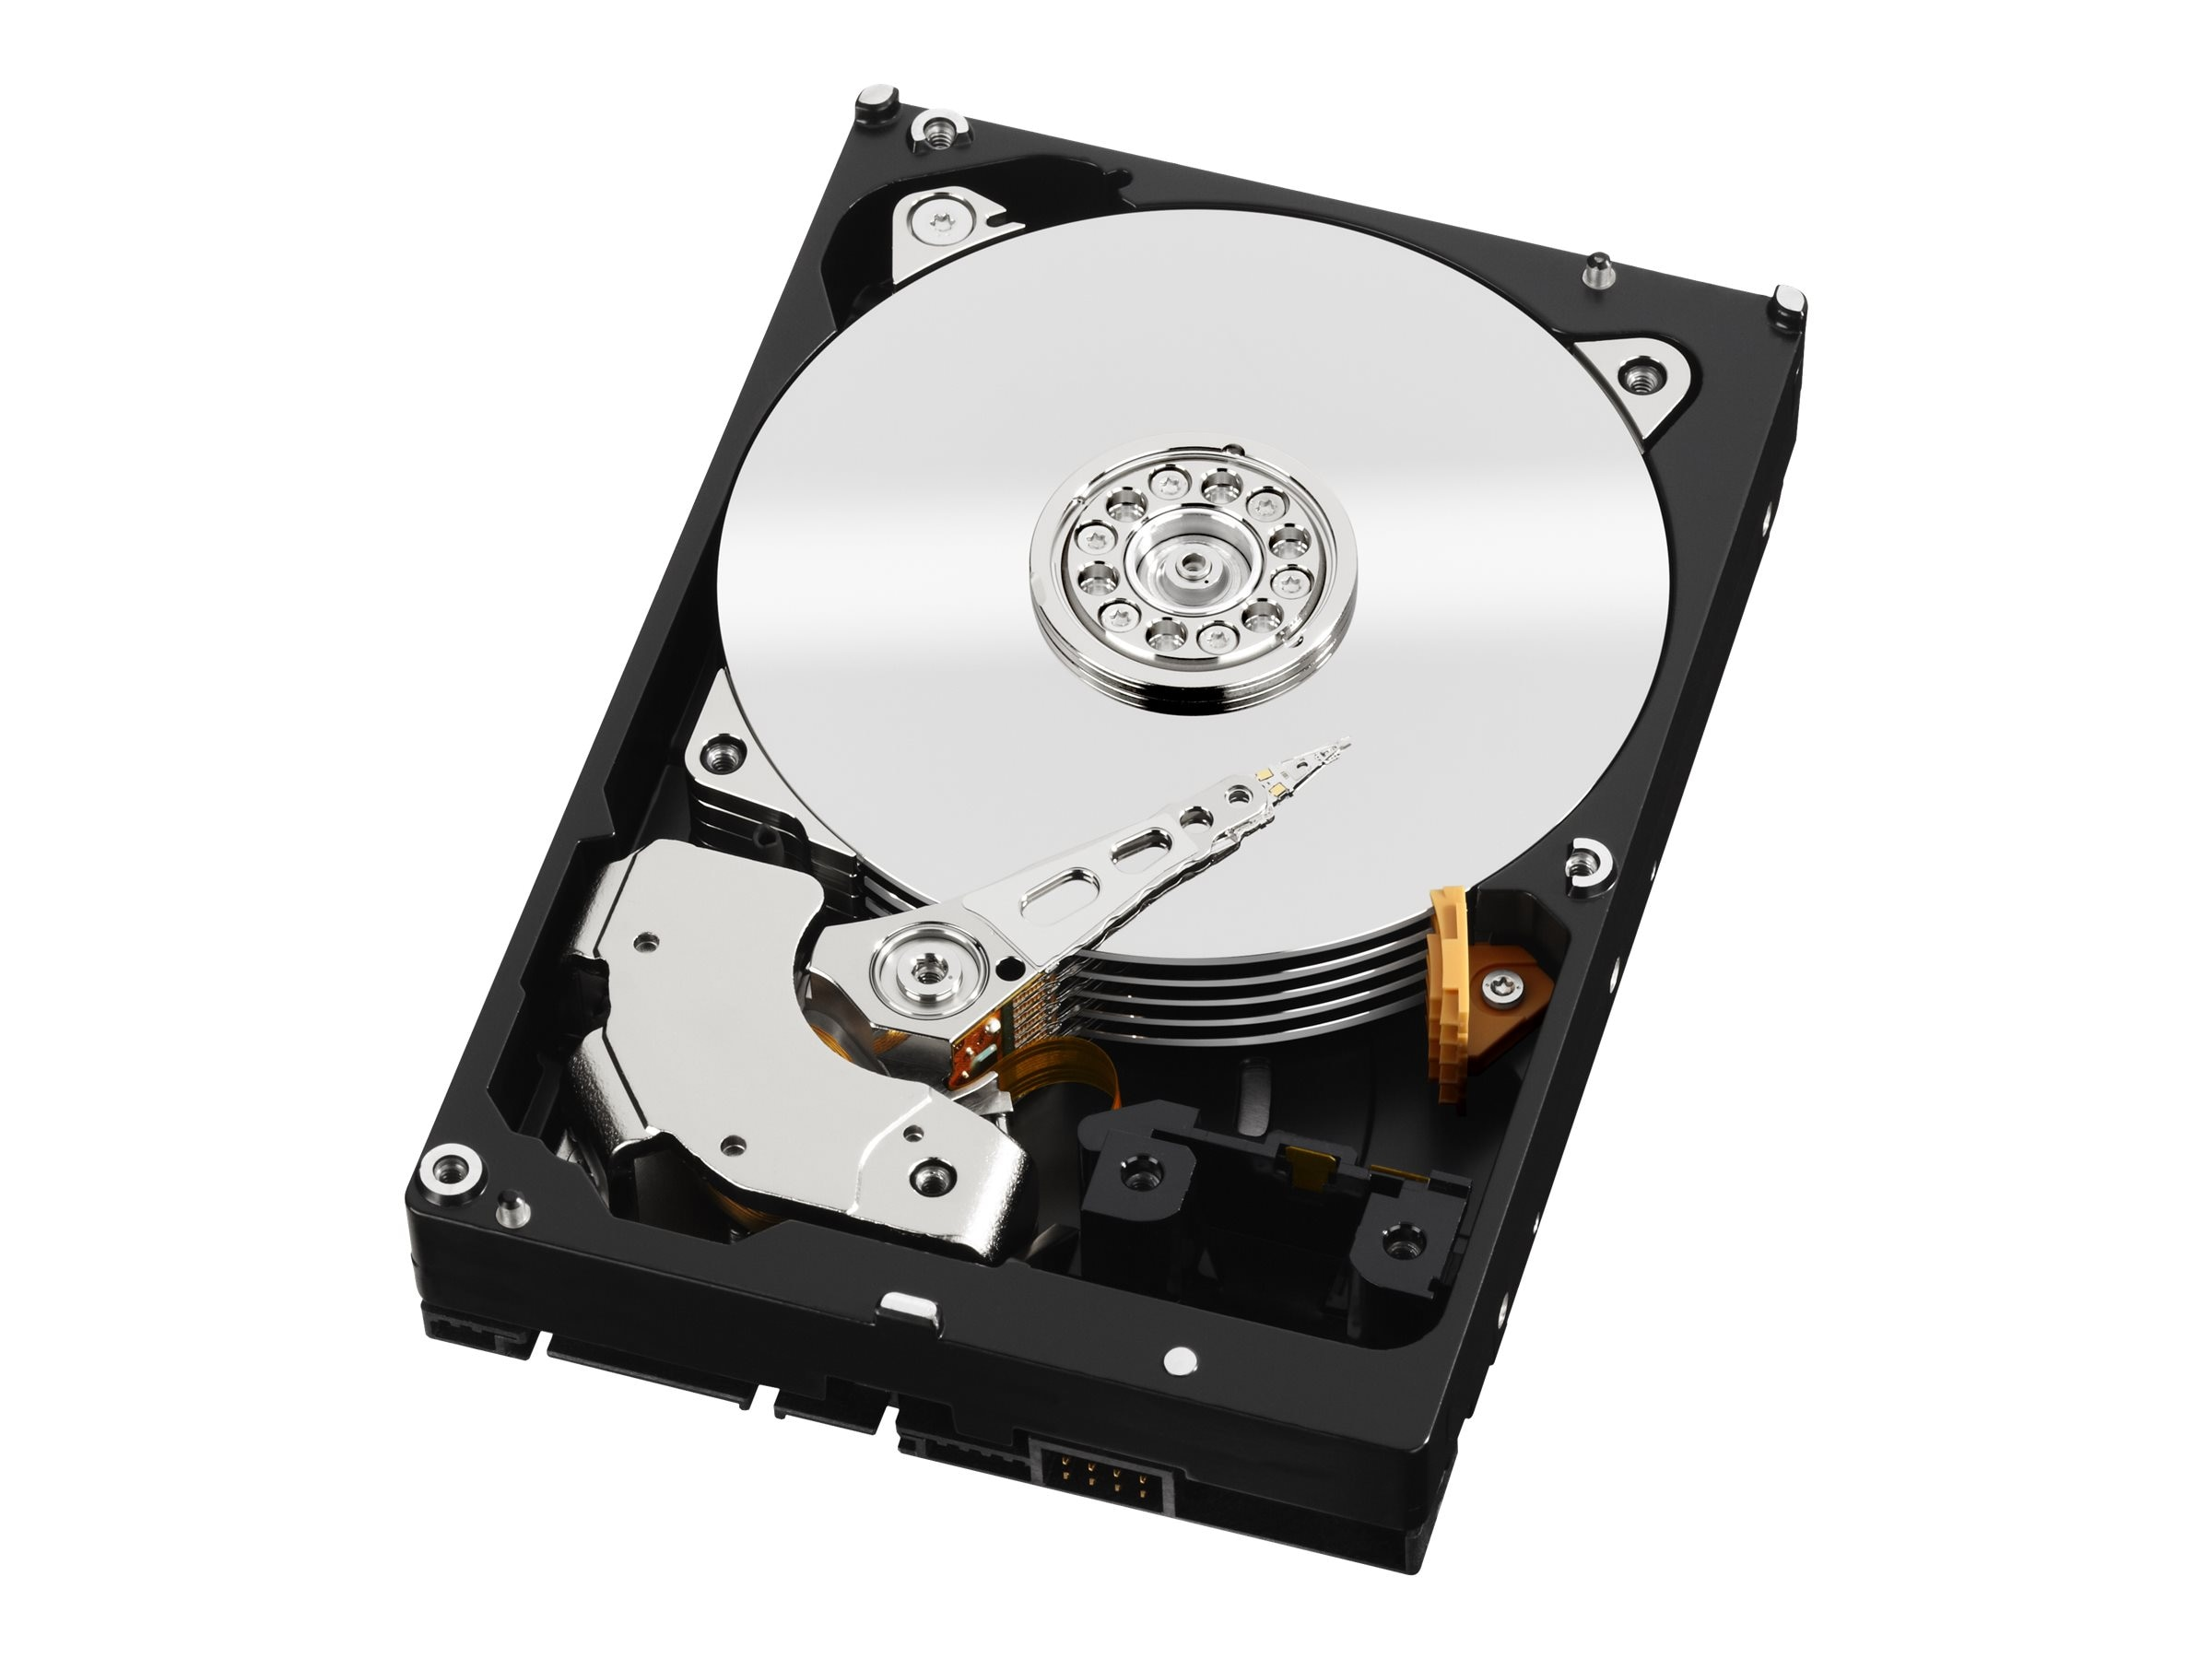 WD 5TB WD Re SATA 6Gb s 512e 3.5 Enterprise Hard Drive - 128MB Cache, WD5001FSYZ